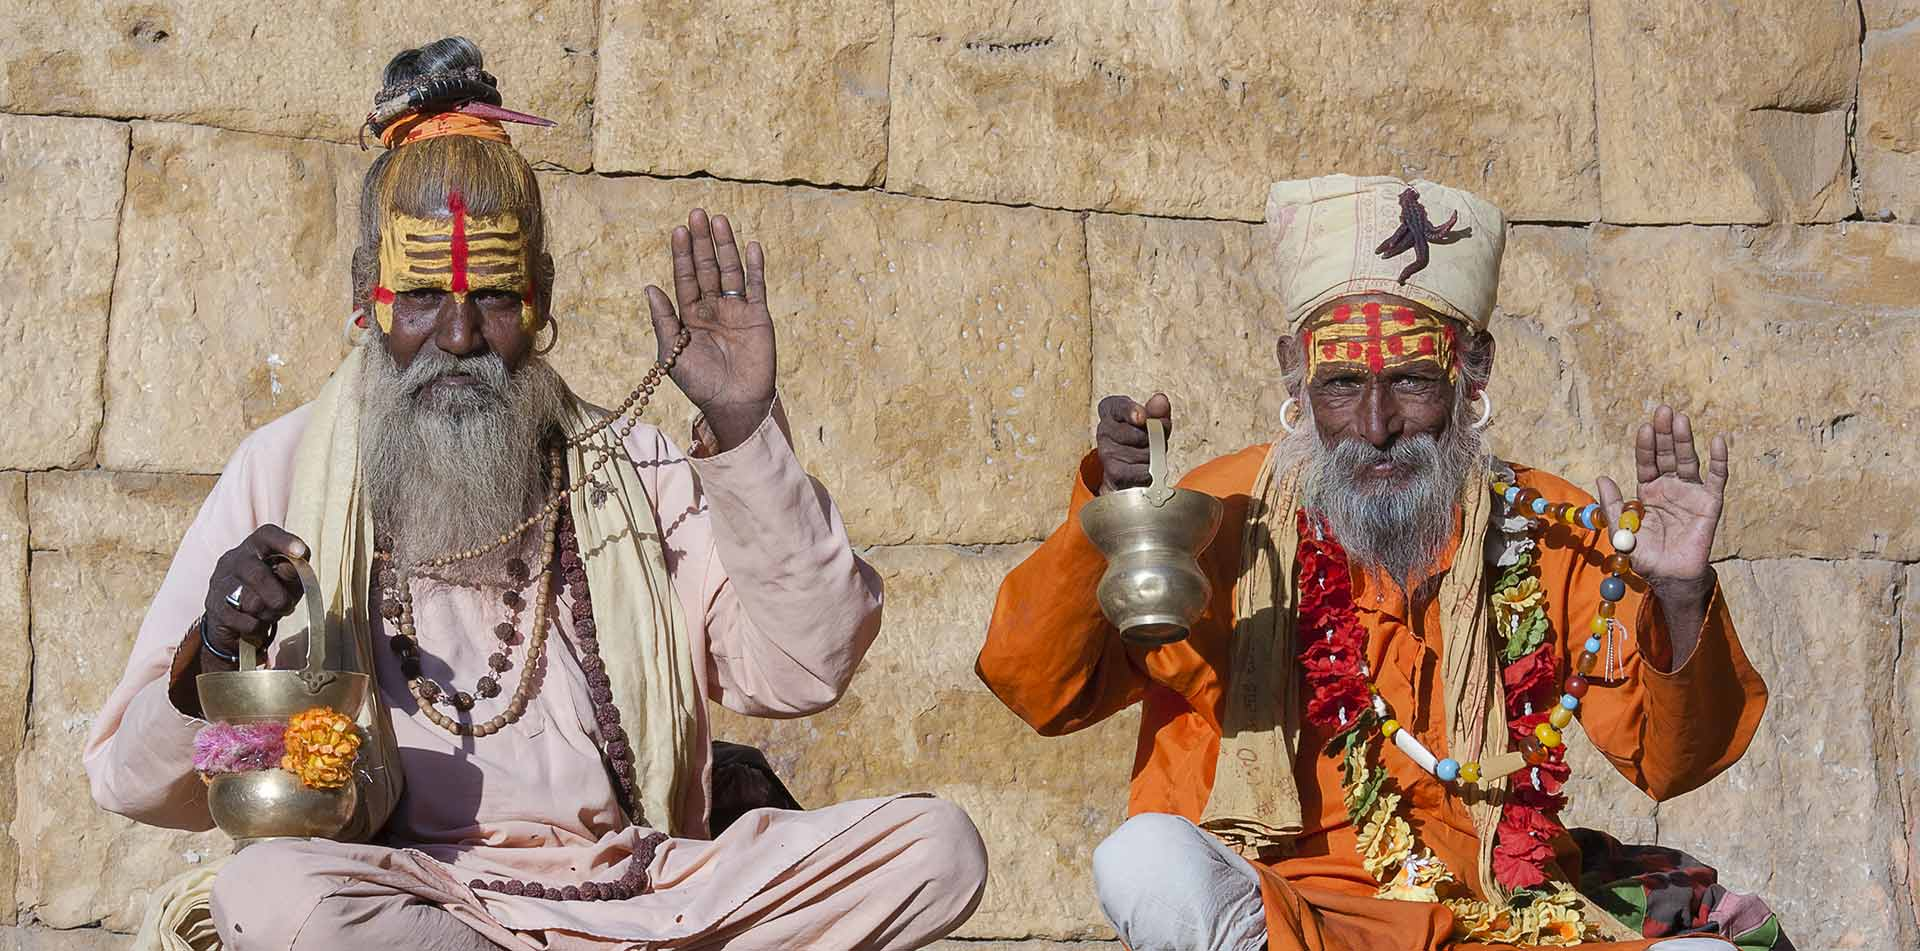 Two hindu men sitting